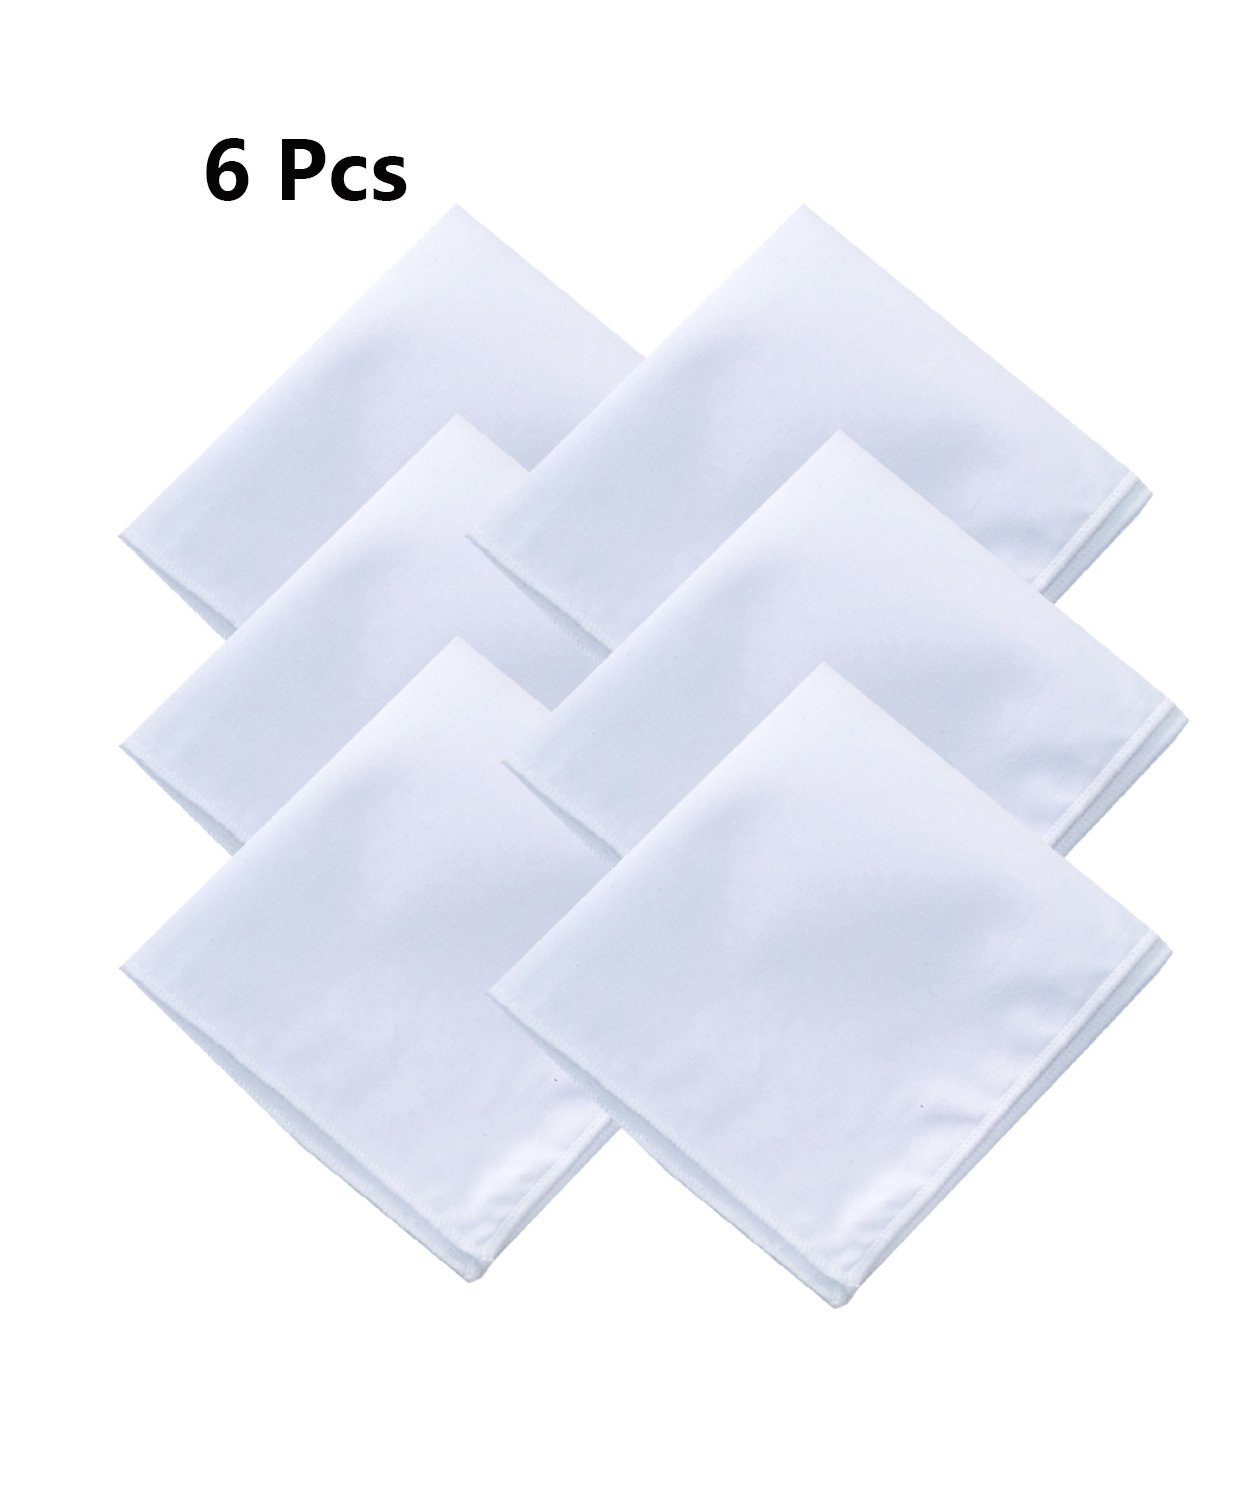 Men's White Cotton Handkerchief Pocket Square for suits